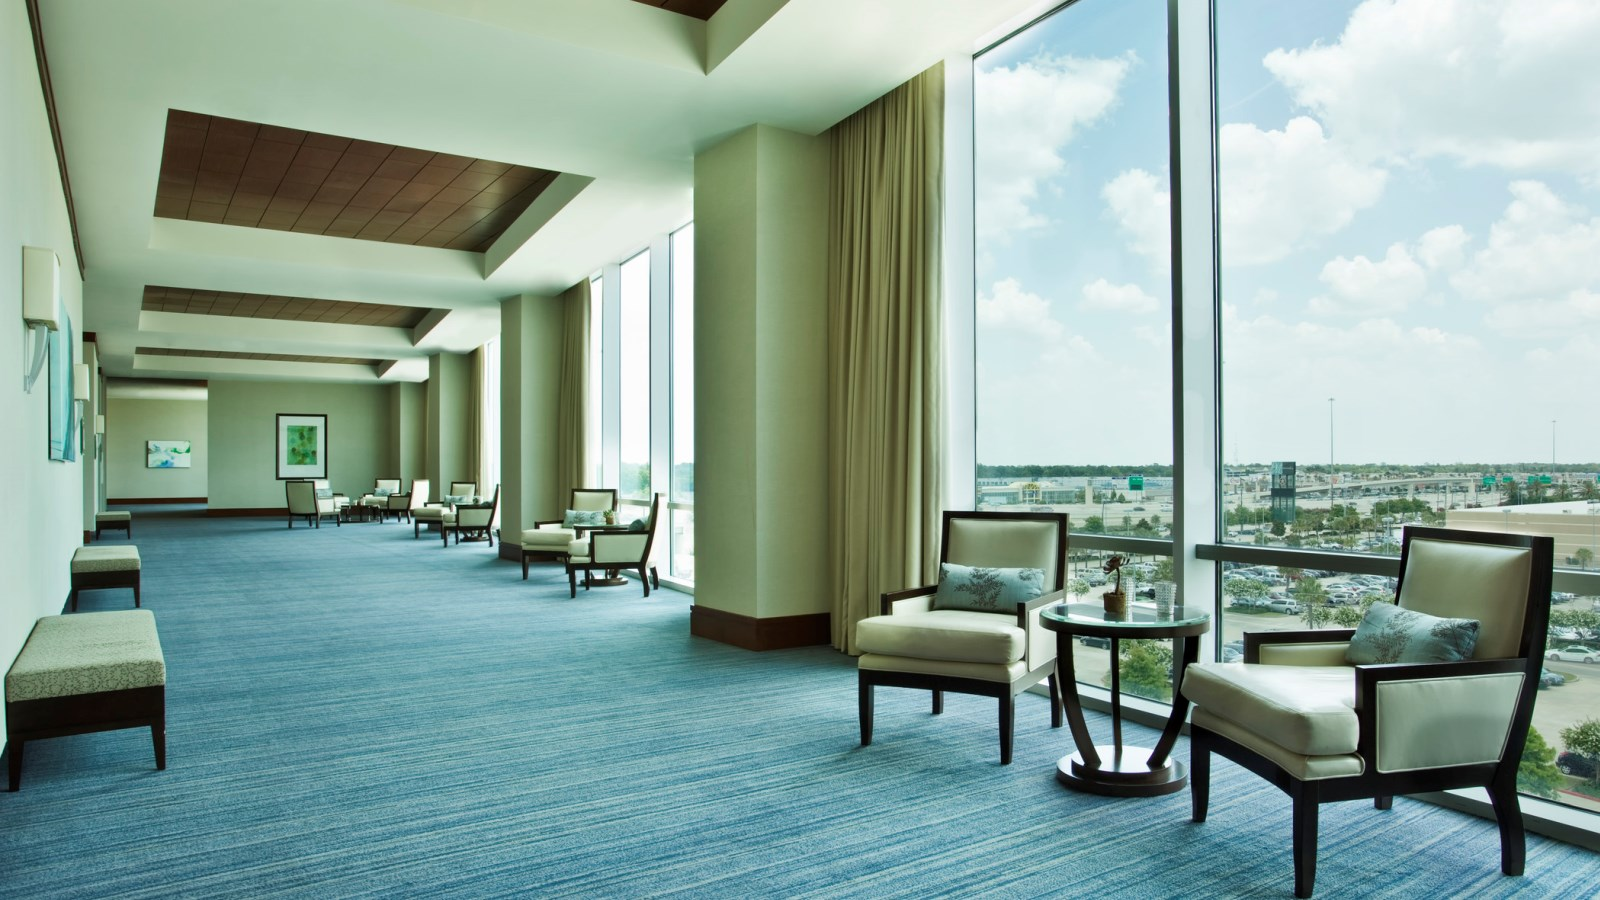 The Azalea Ballroom's airy pre-function area provides fantastic views of Memorial City.